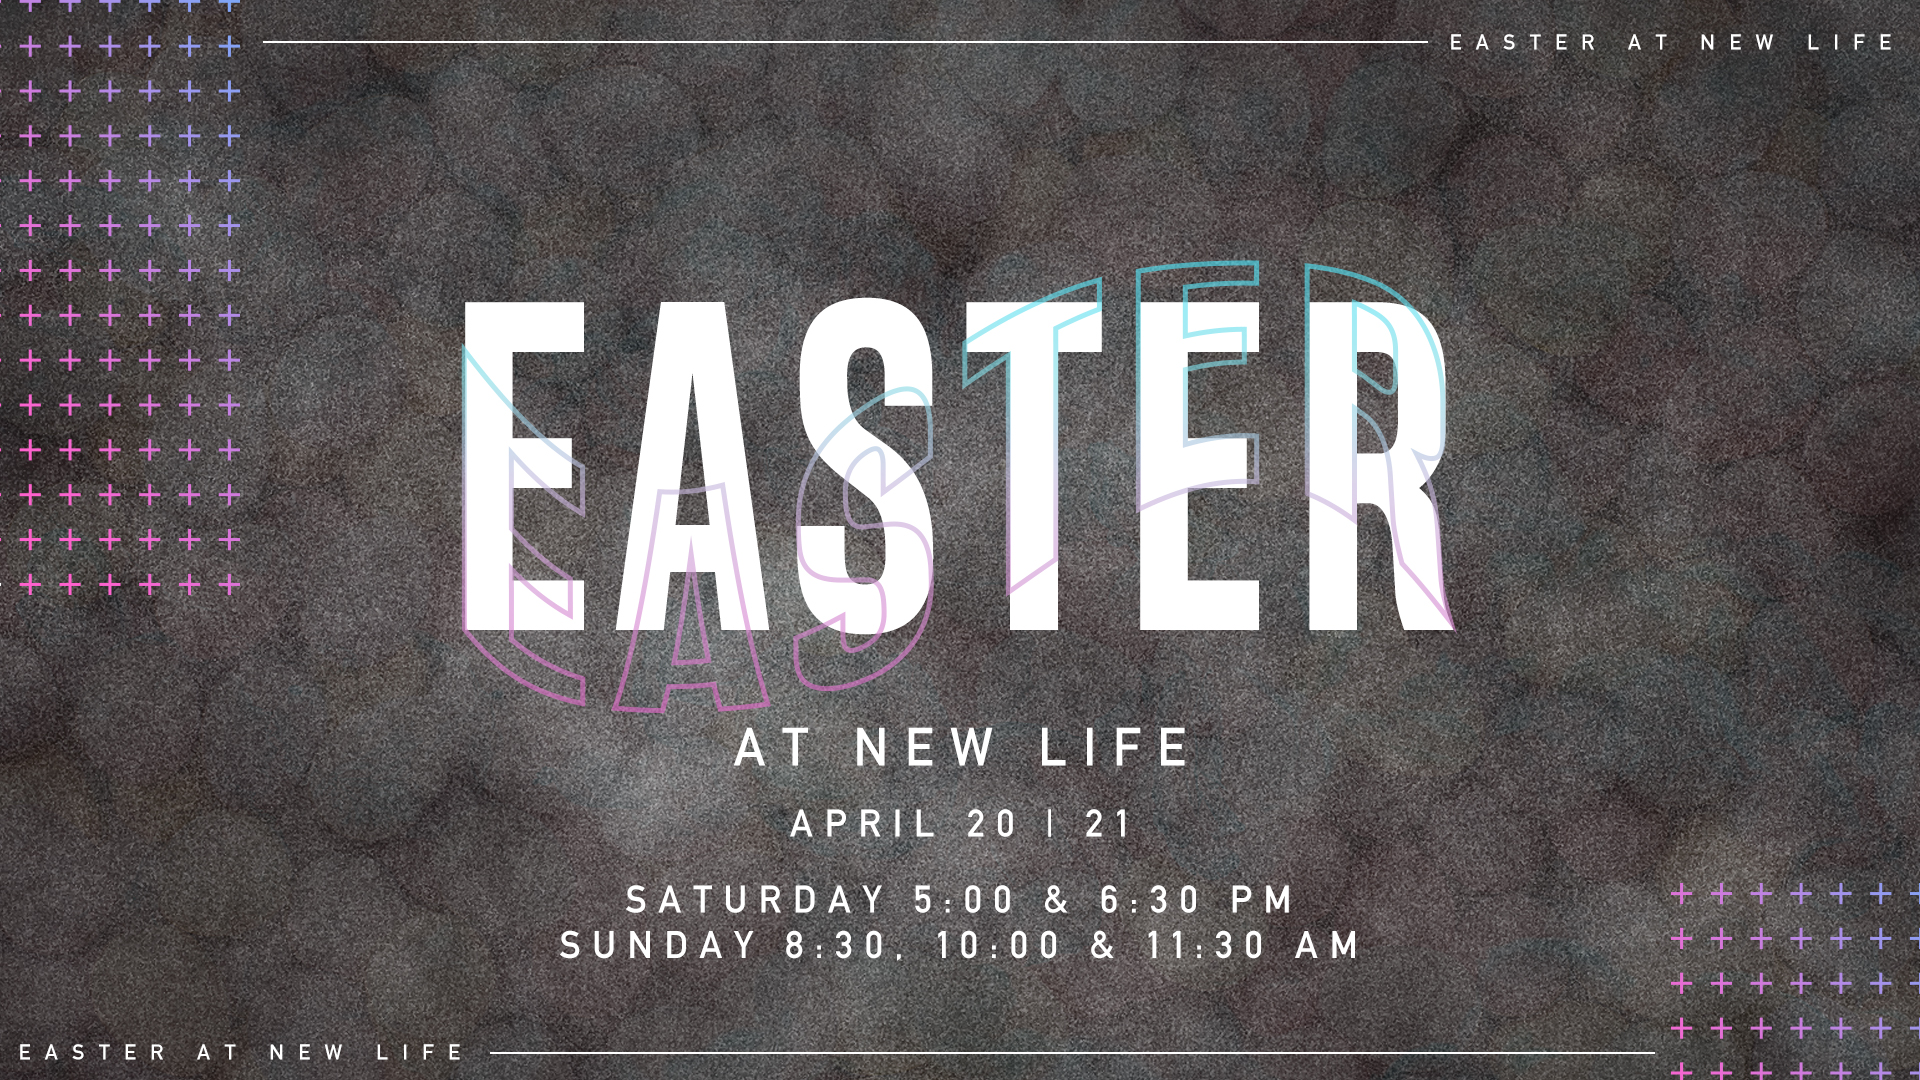 Easter At New Life.jpg